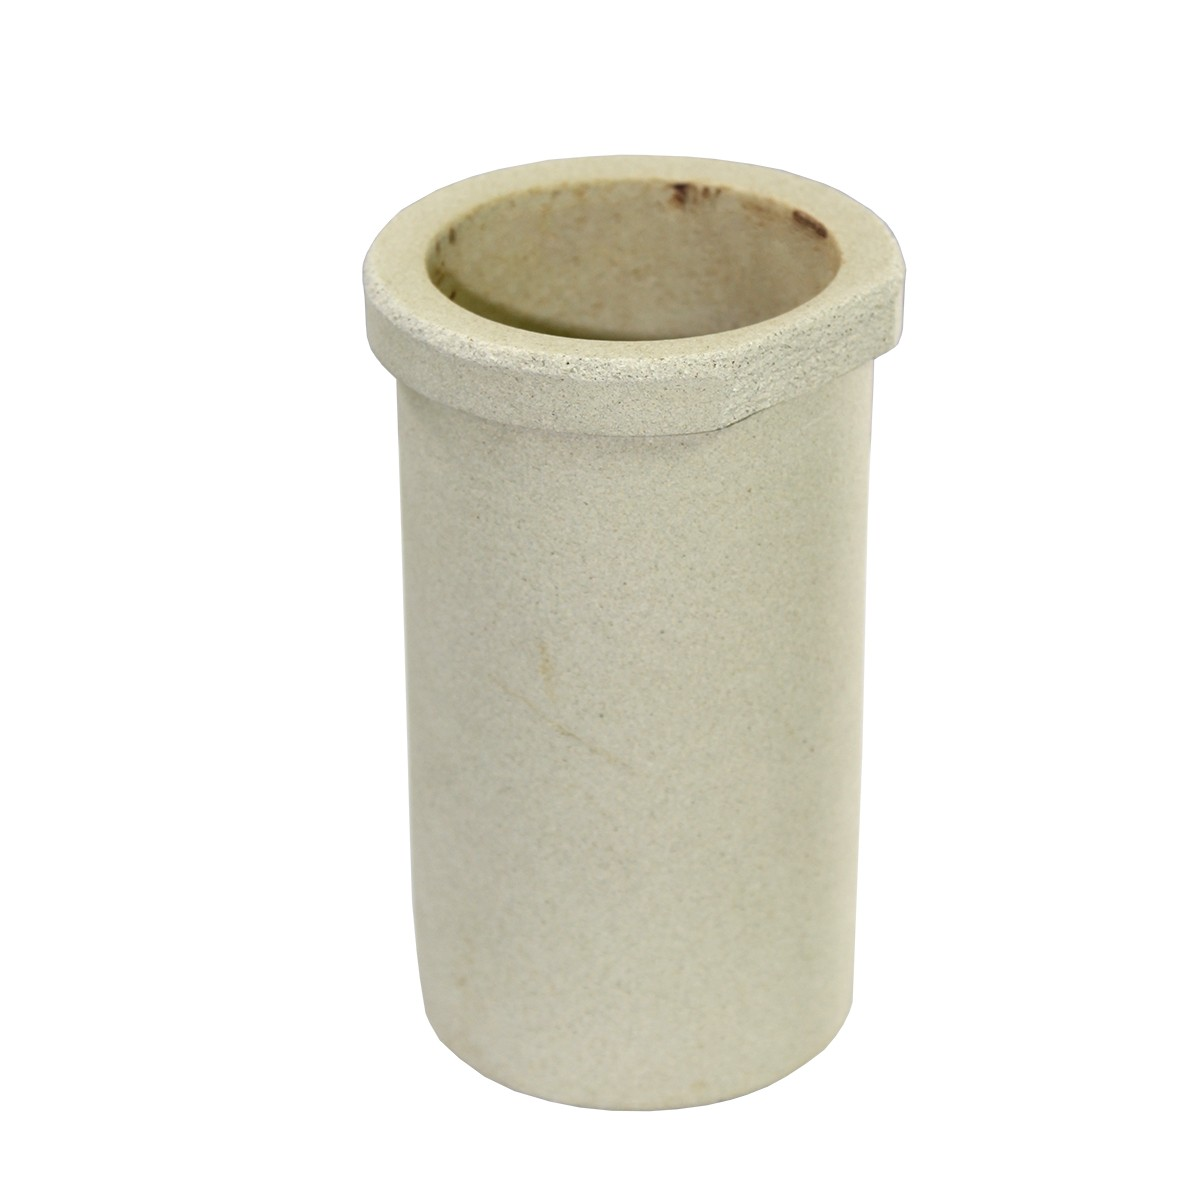 Ceia F3 Ceramic Container Only